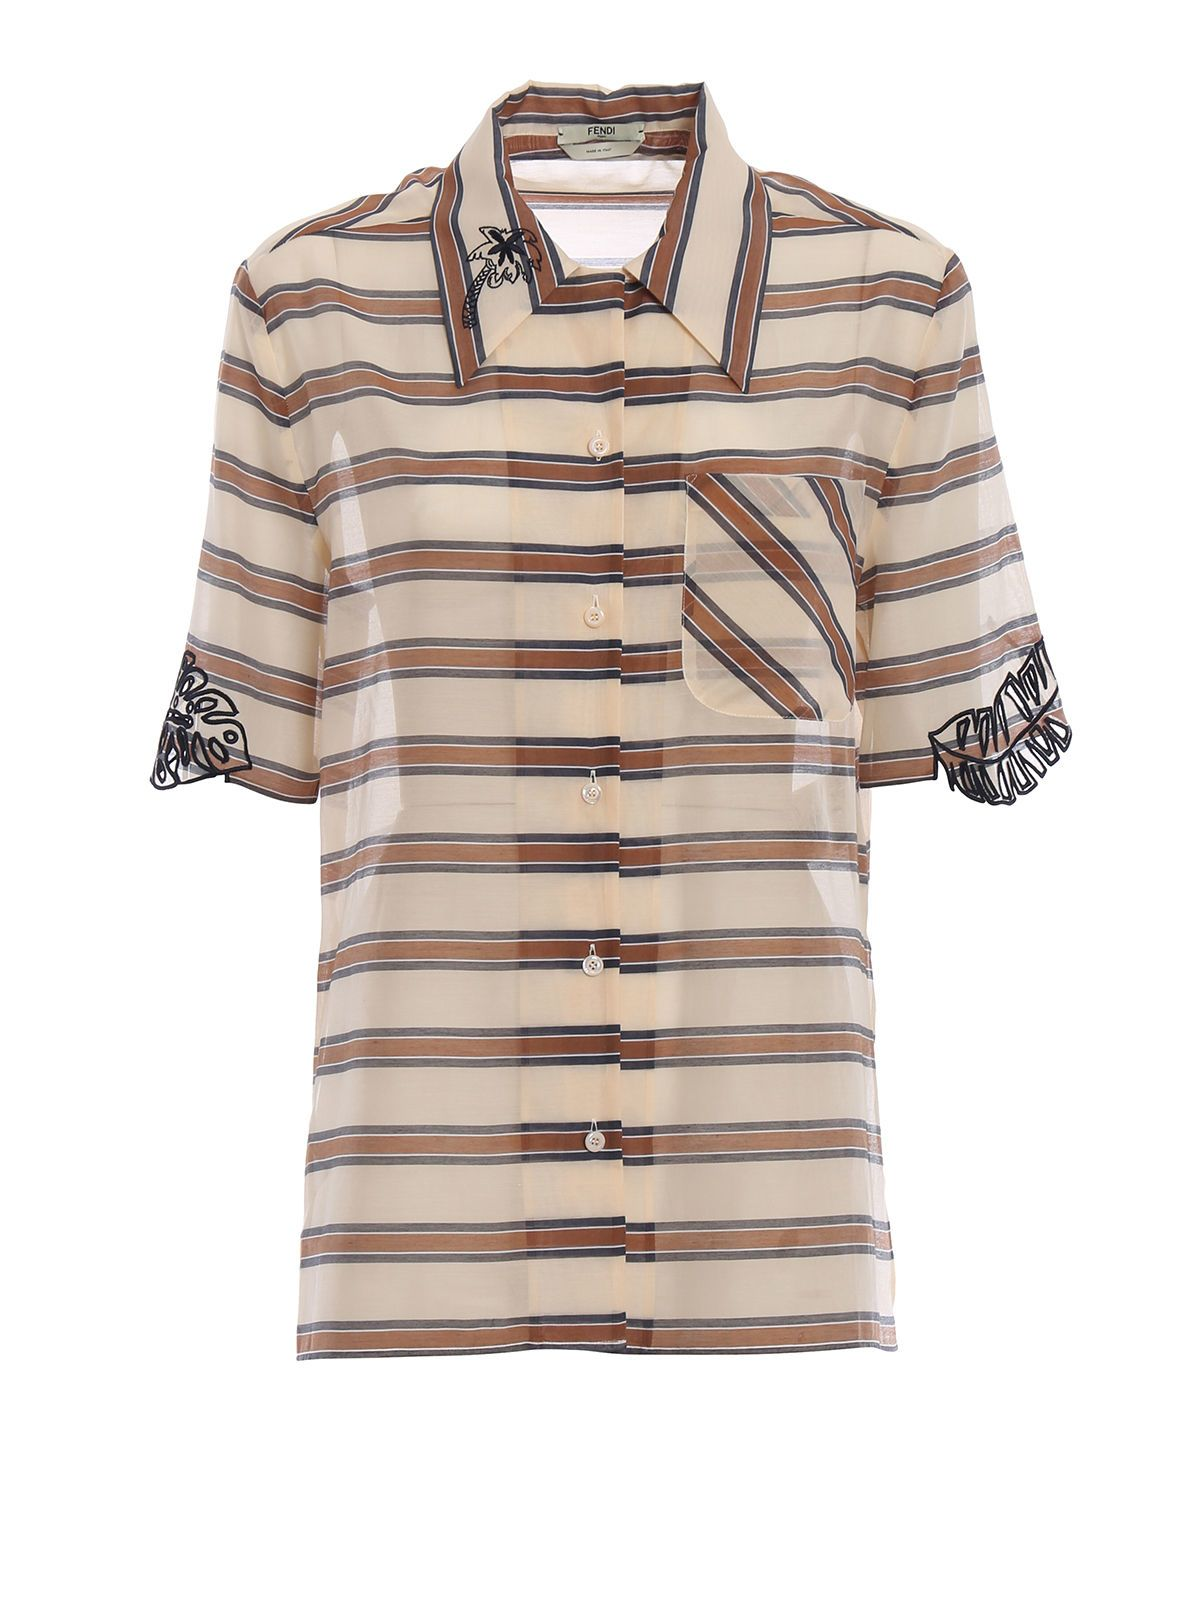 Fendi Shaded Stripes Shirt 10577976